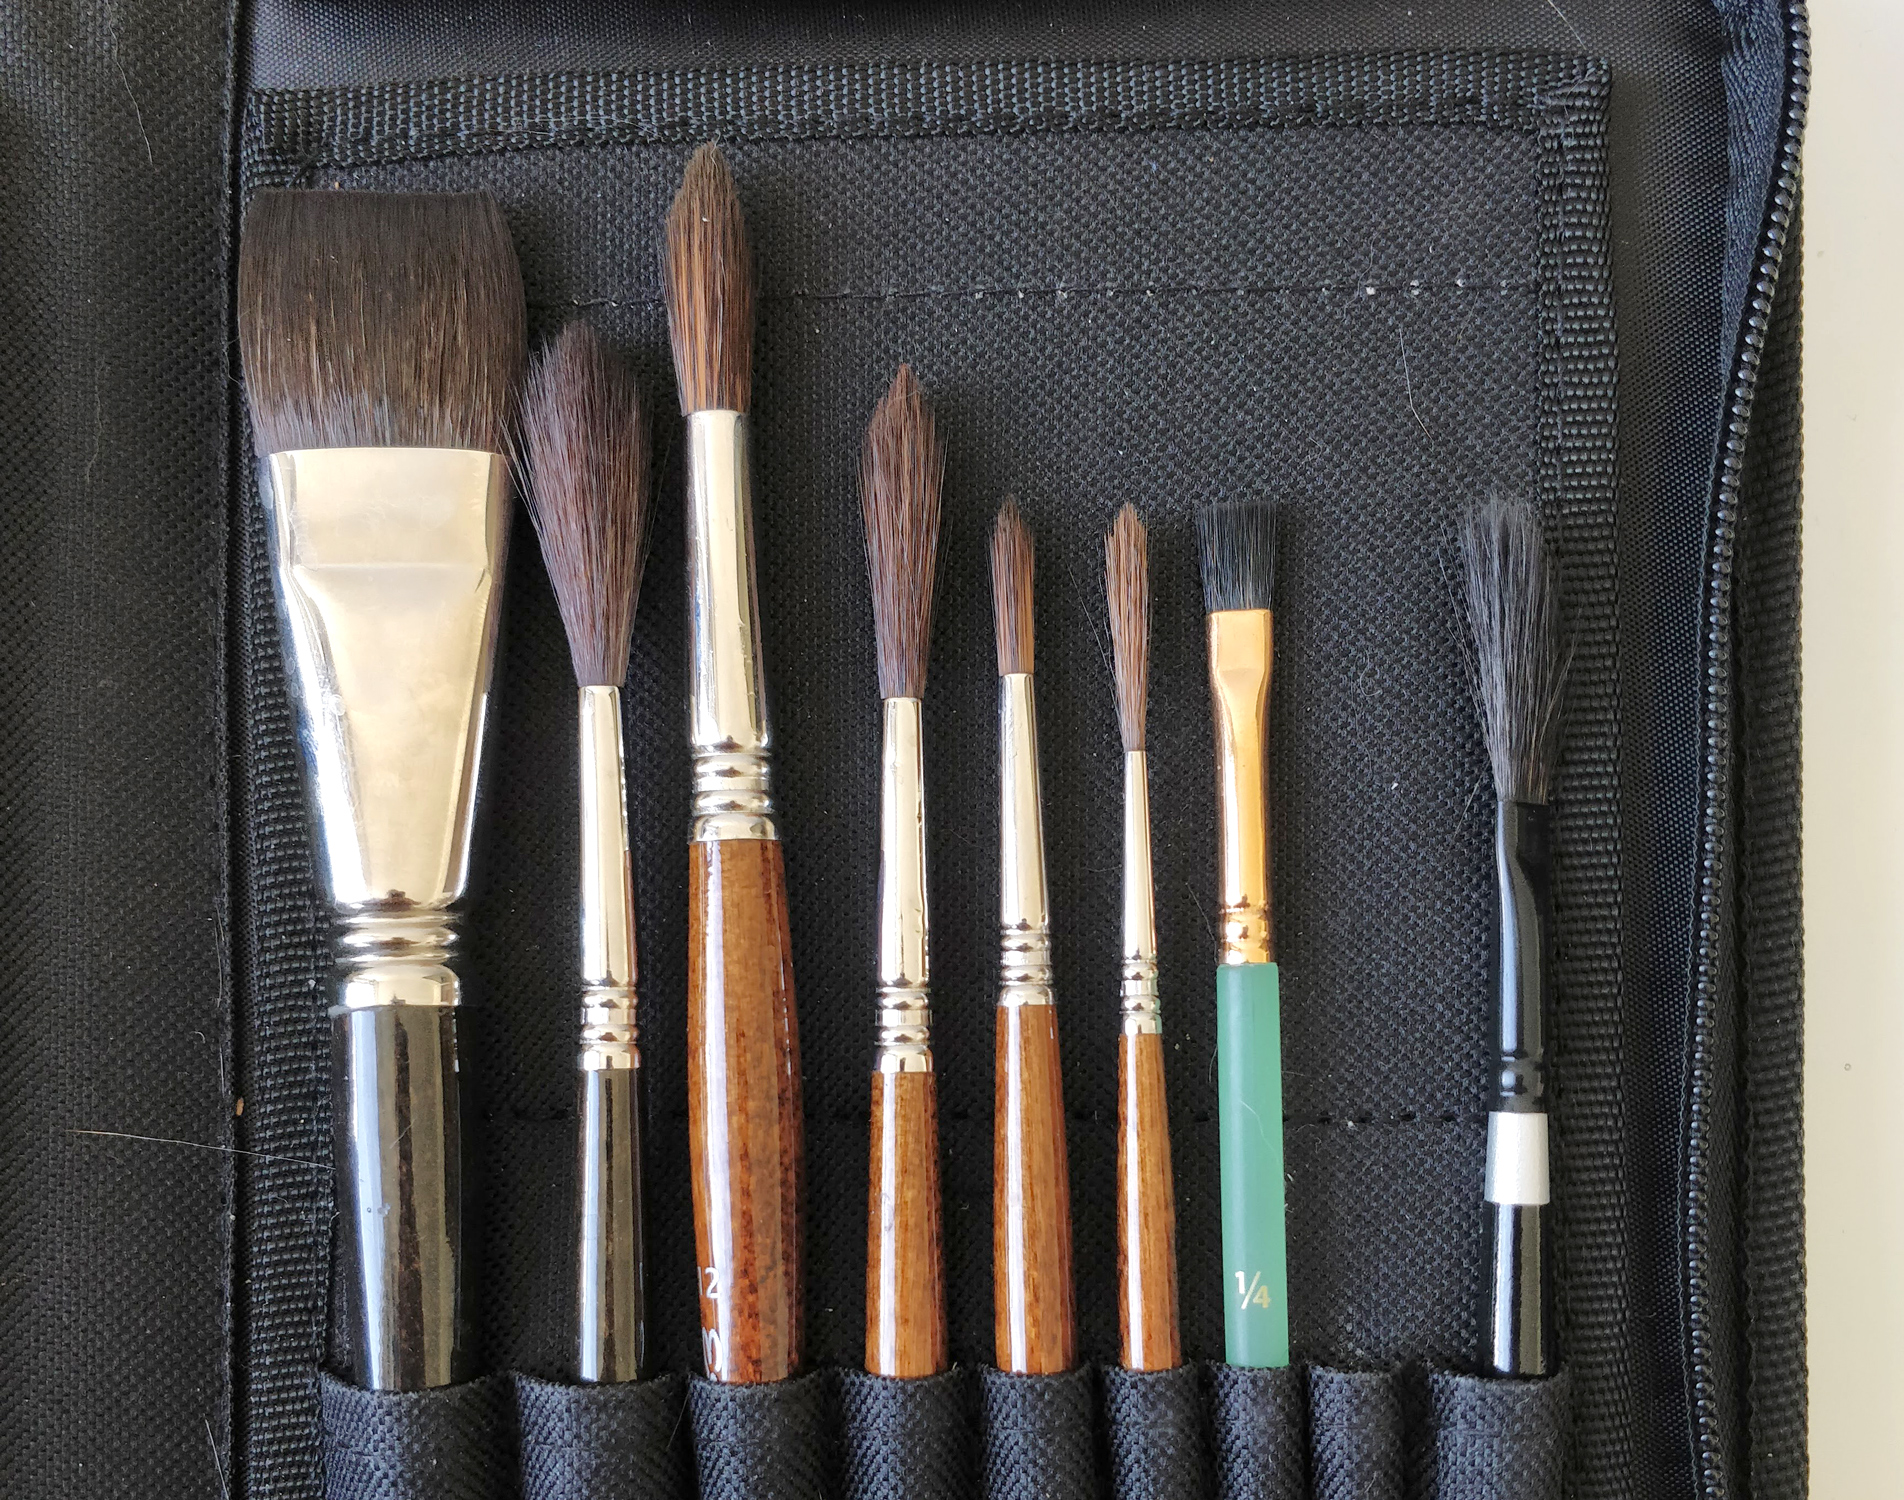 My synthetic hair brushes